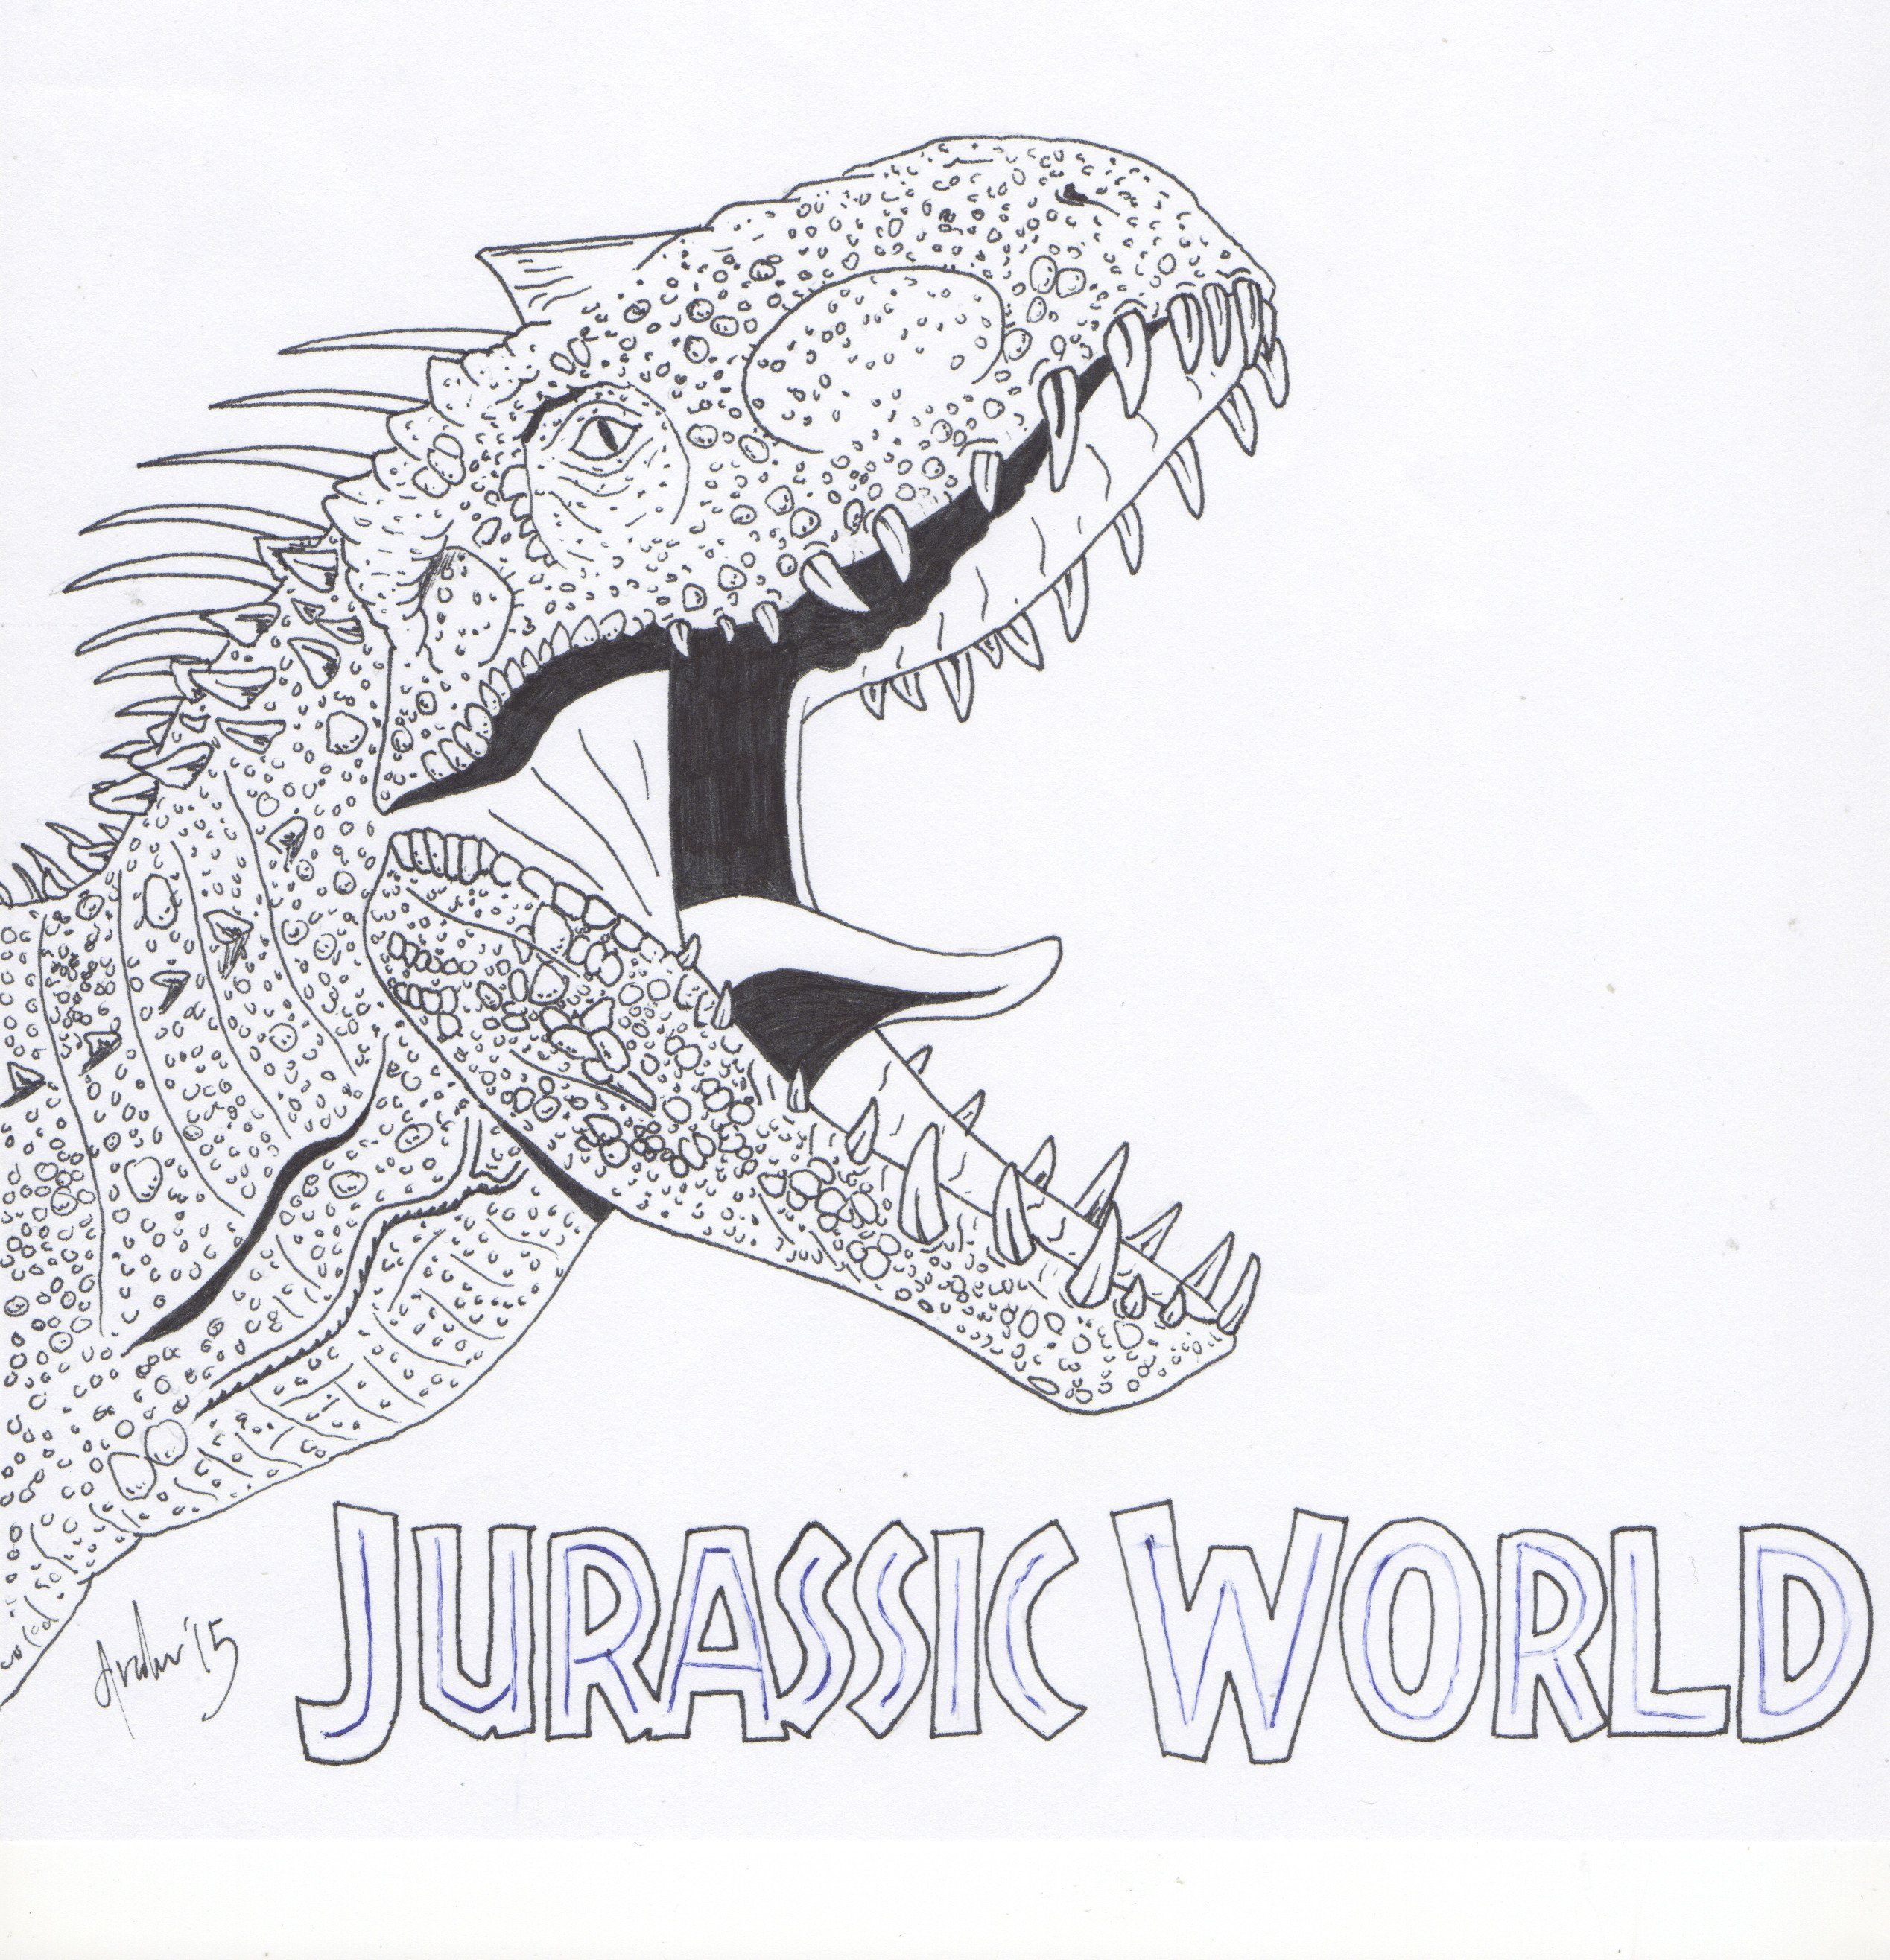 30 Inspirational Jurassic World Coloring Pages In 2020 Jurassic World Coloring Pages Jurassic